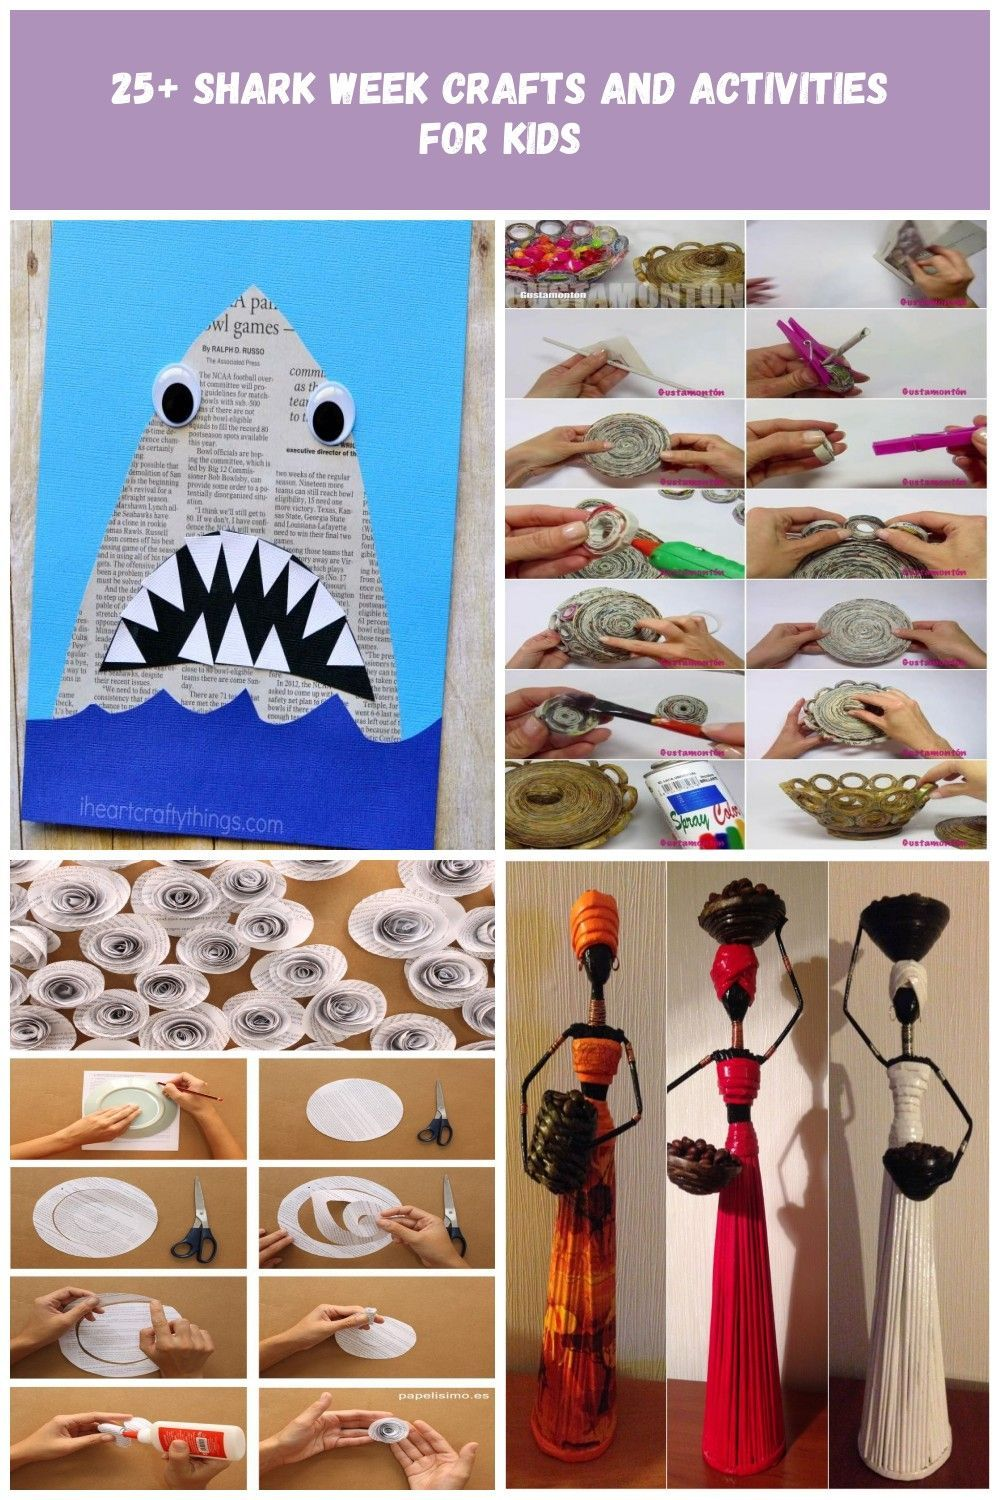 25+ Awesome Shark Week Crafts and Activities for Kids, Over 30 Shark Week Activities, free printables, Shark Theme Party ideas, Shark Week Food, Shark Crafts, Games & more #sharkweek #sharkcrafts #sharkweekactivities #sharktheme #oceantheme #kindergarten #preschool newspaper crafts 25+ Shark Week Crafts and Activities for Kids #sharkweekfood 25+ Awesome Shark Week Crafts and Activities for Kids, Over 30 Shark Week Activities, free printables, Shark Theme Party ideas, Shark Week Food, Shark Craft #sharkweekfood